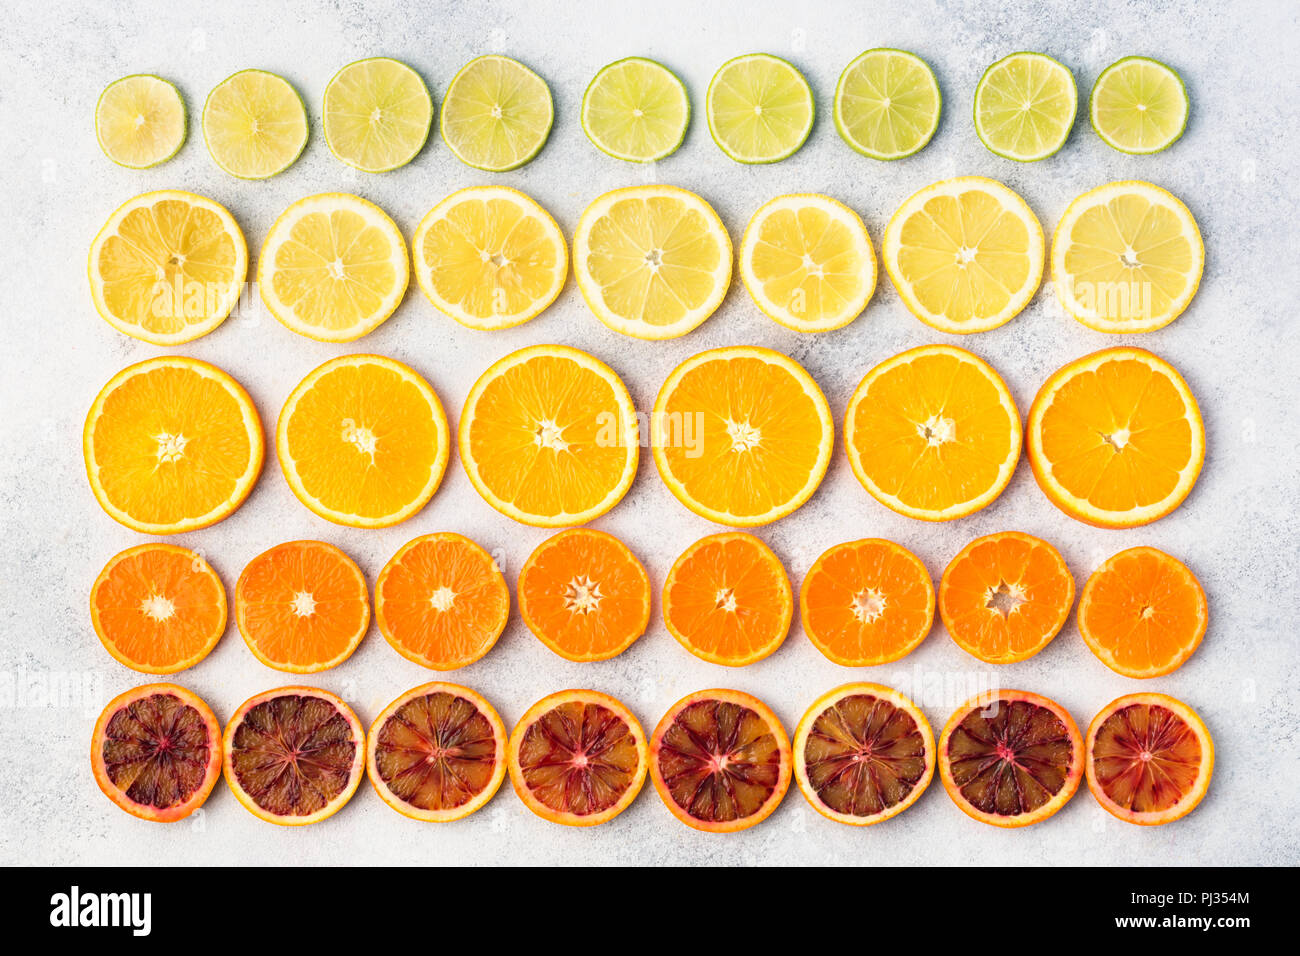 Citrus fruits rich in vitamin C, oranges, lemons, limes, satsumas arranged in the rows. Colorful background, top view - Stock Image